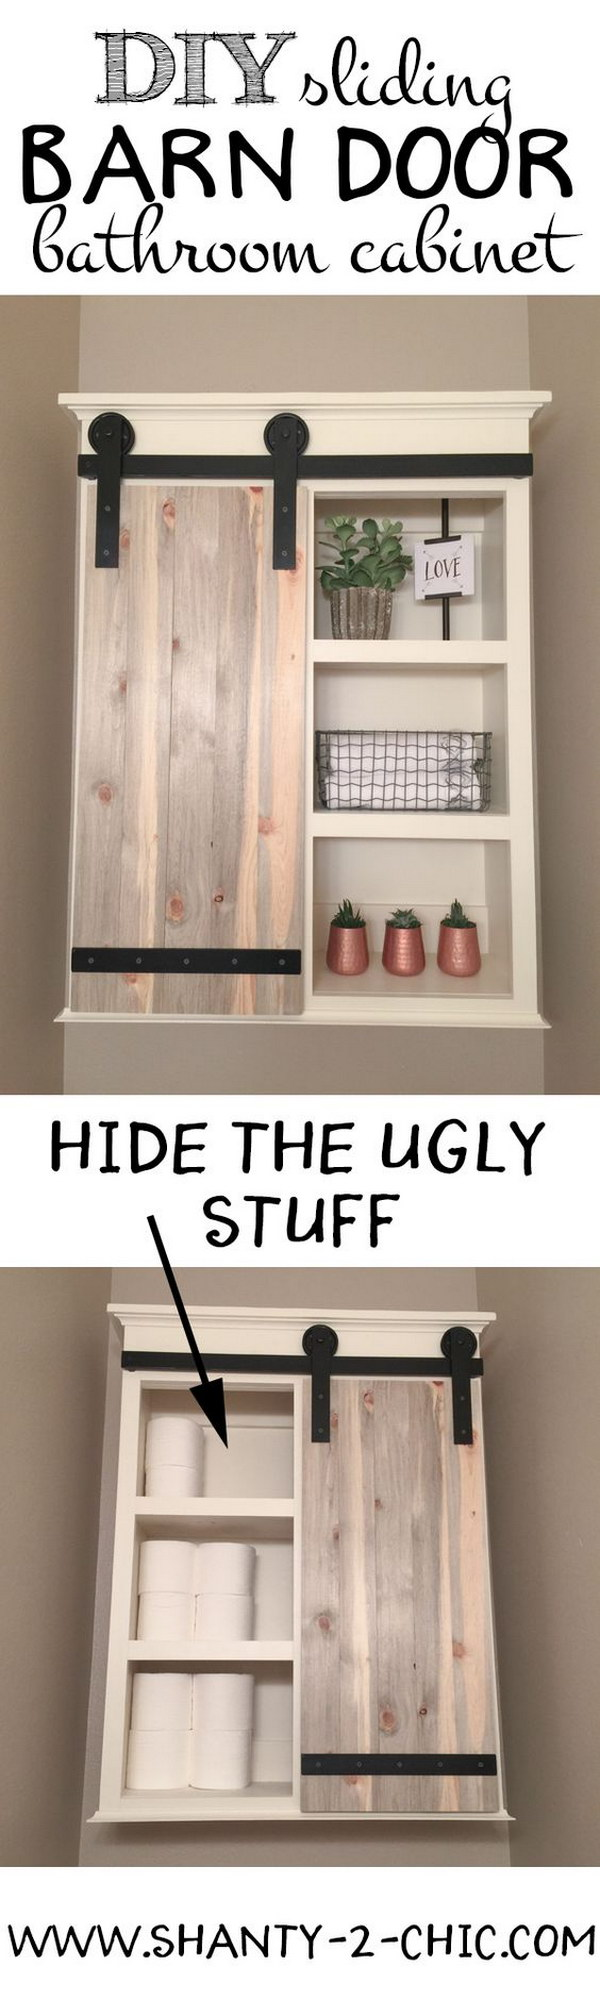 DIY Sliding Barn Door Storage Cabinet